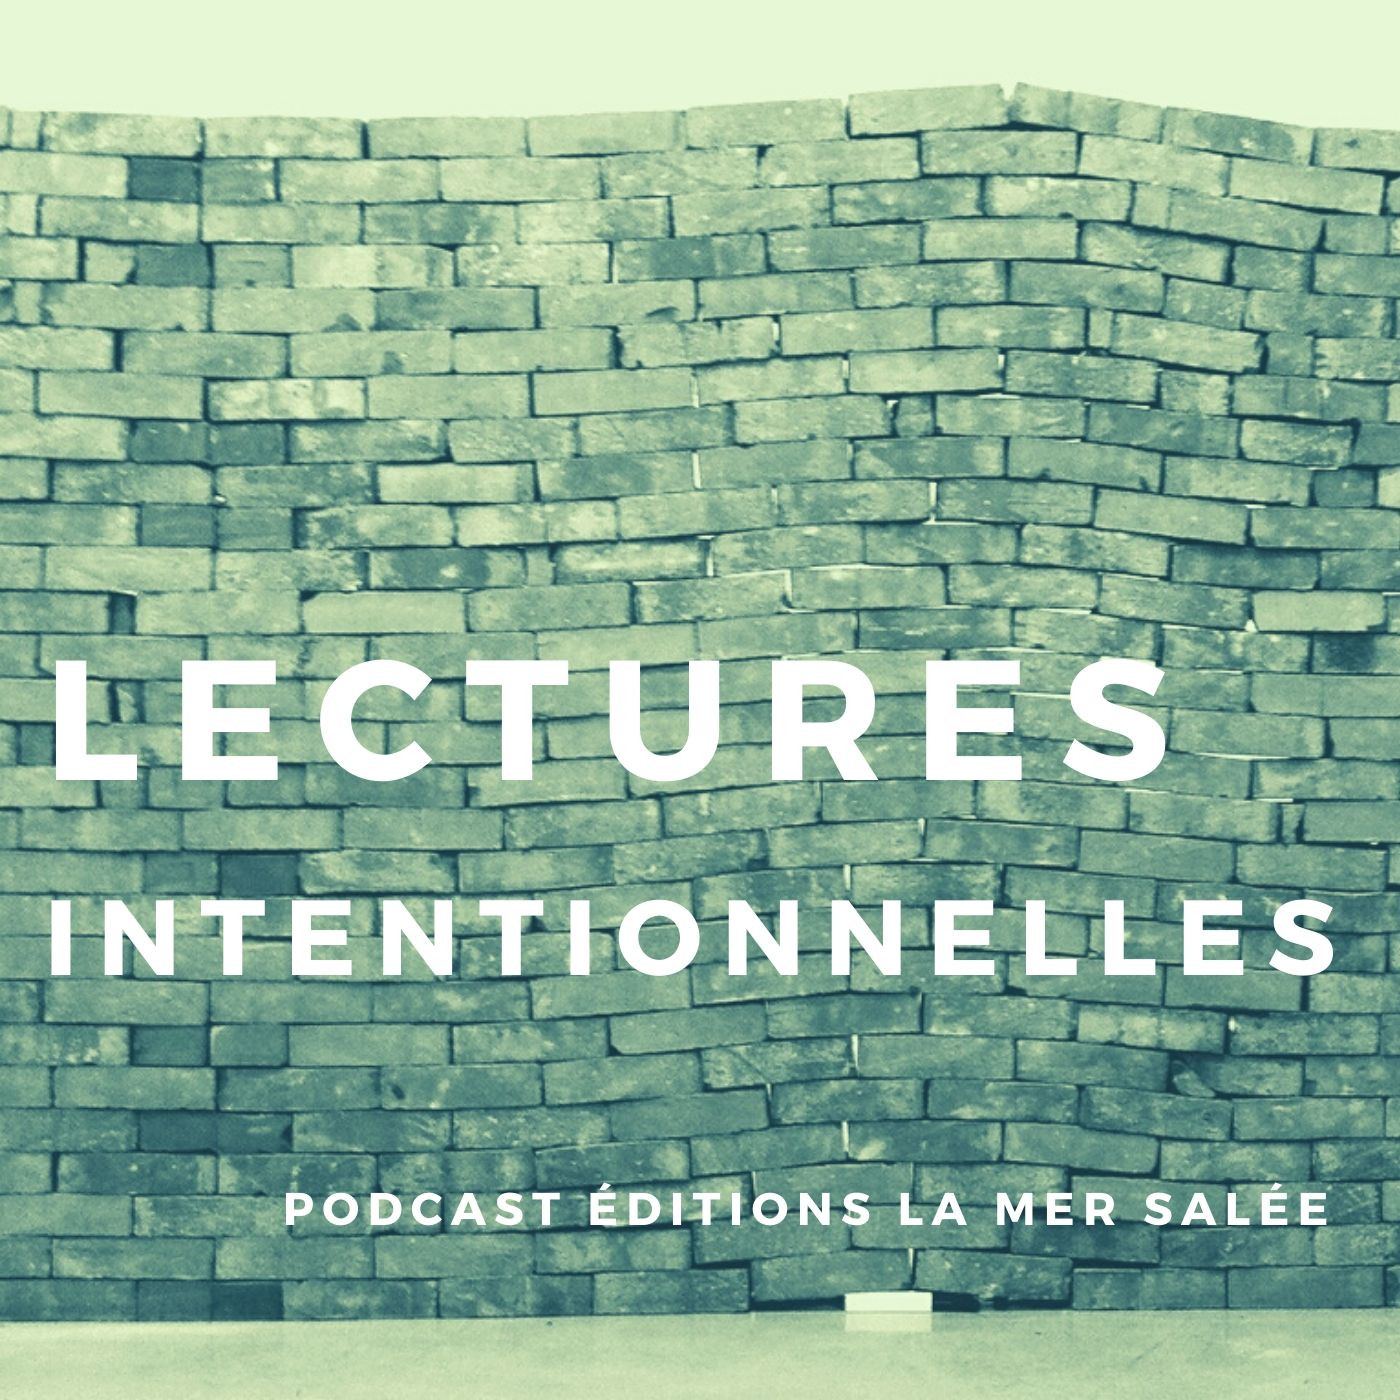 Lectures intentionnelles